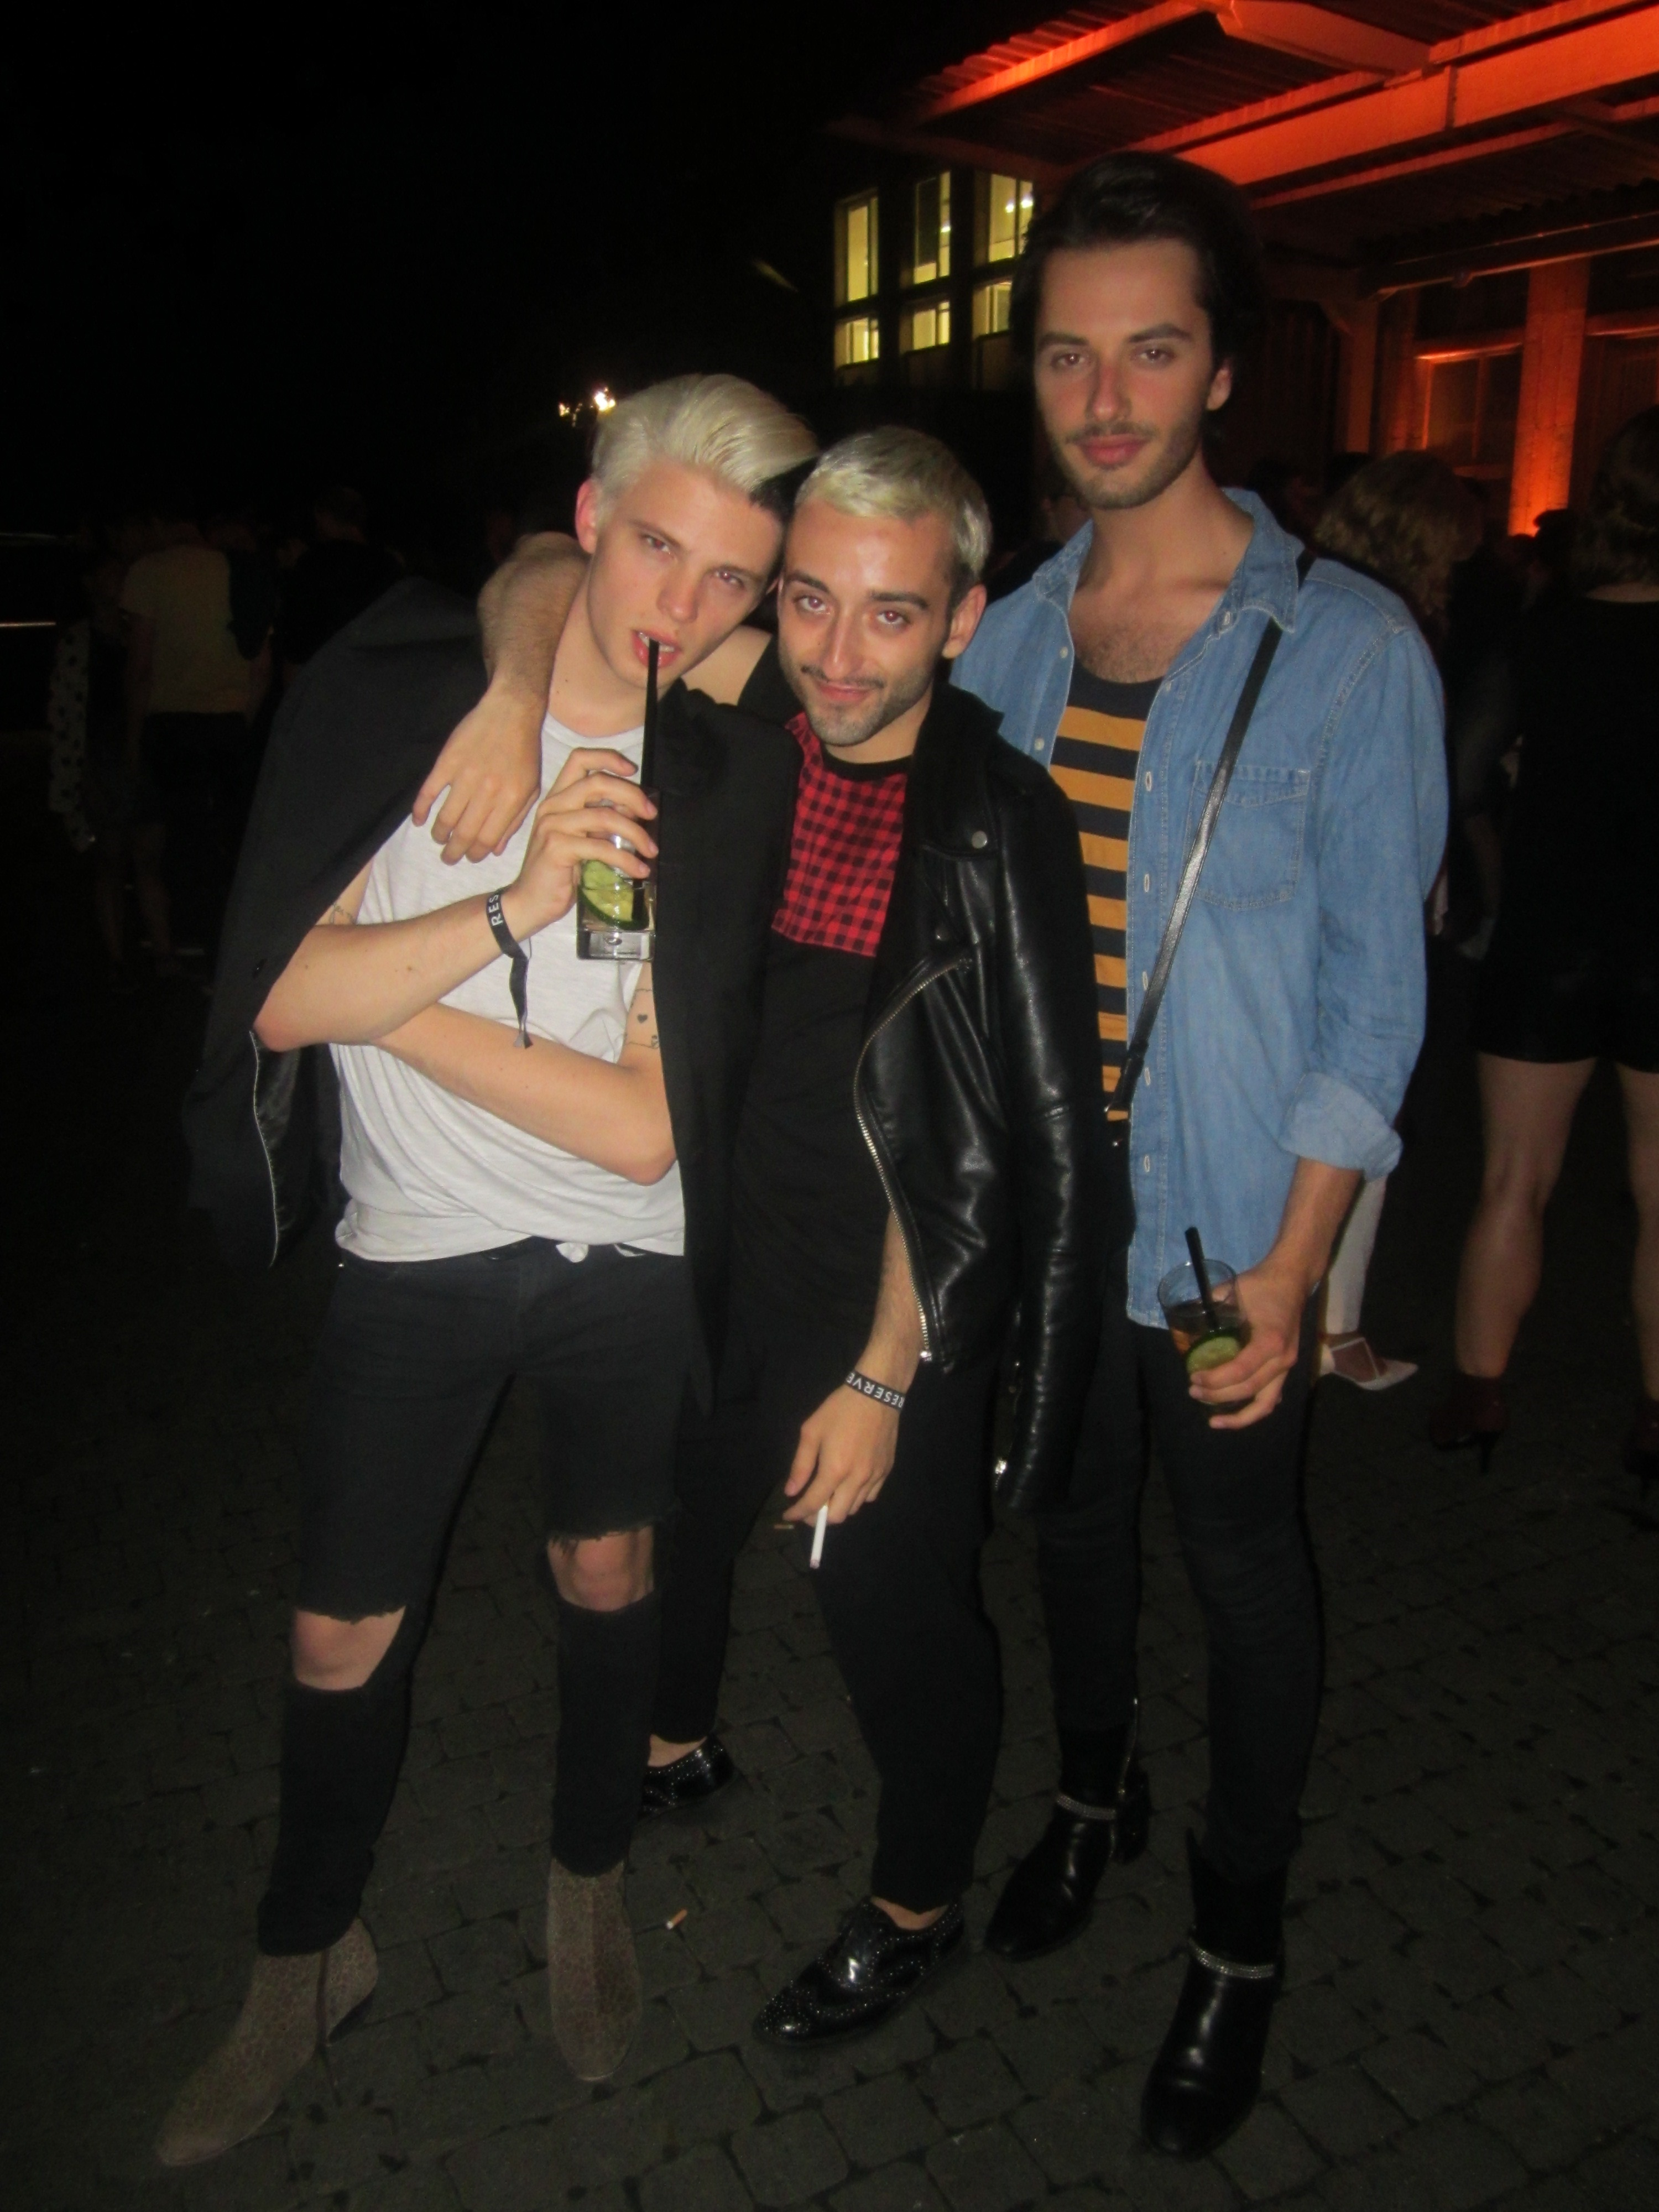 Jan, Mauri & Dustin from 'Homme to go'